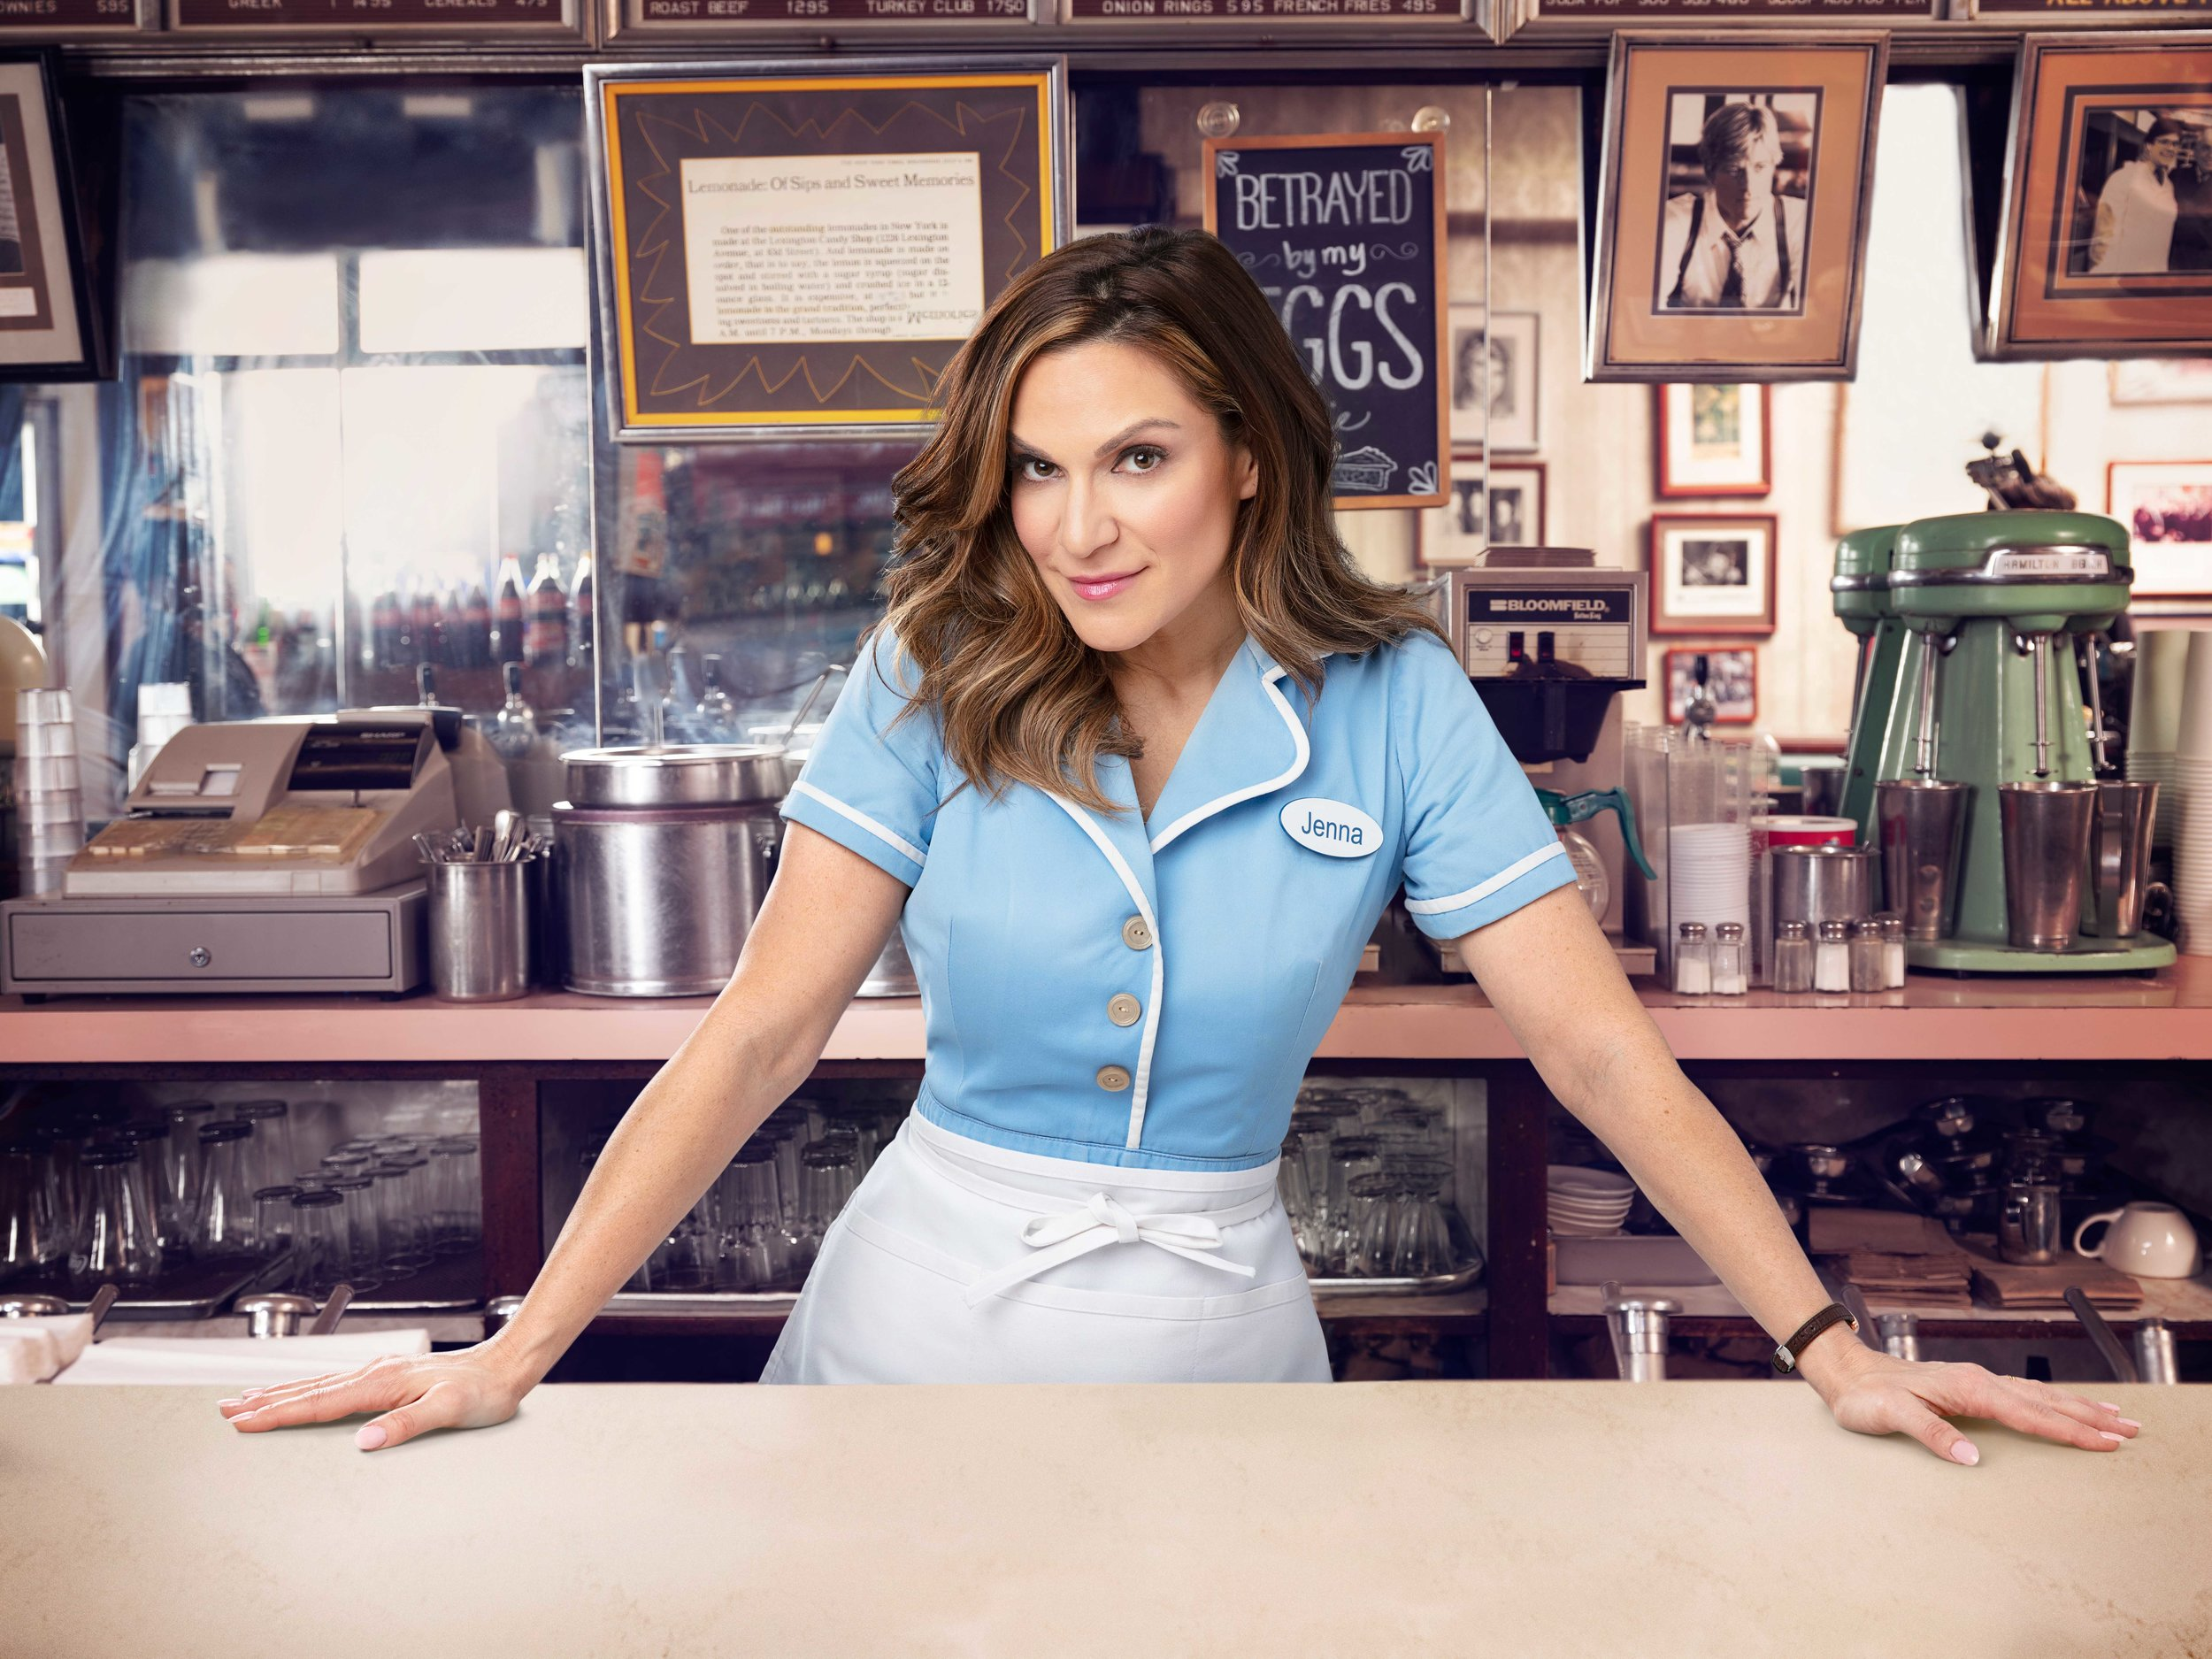 WAITRESS_BEAN_0403_DINER-COMP_03.jpg